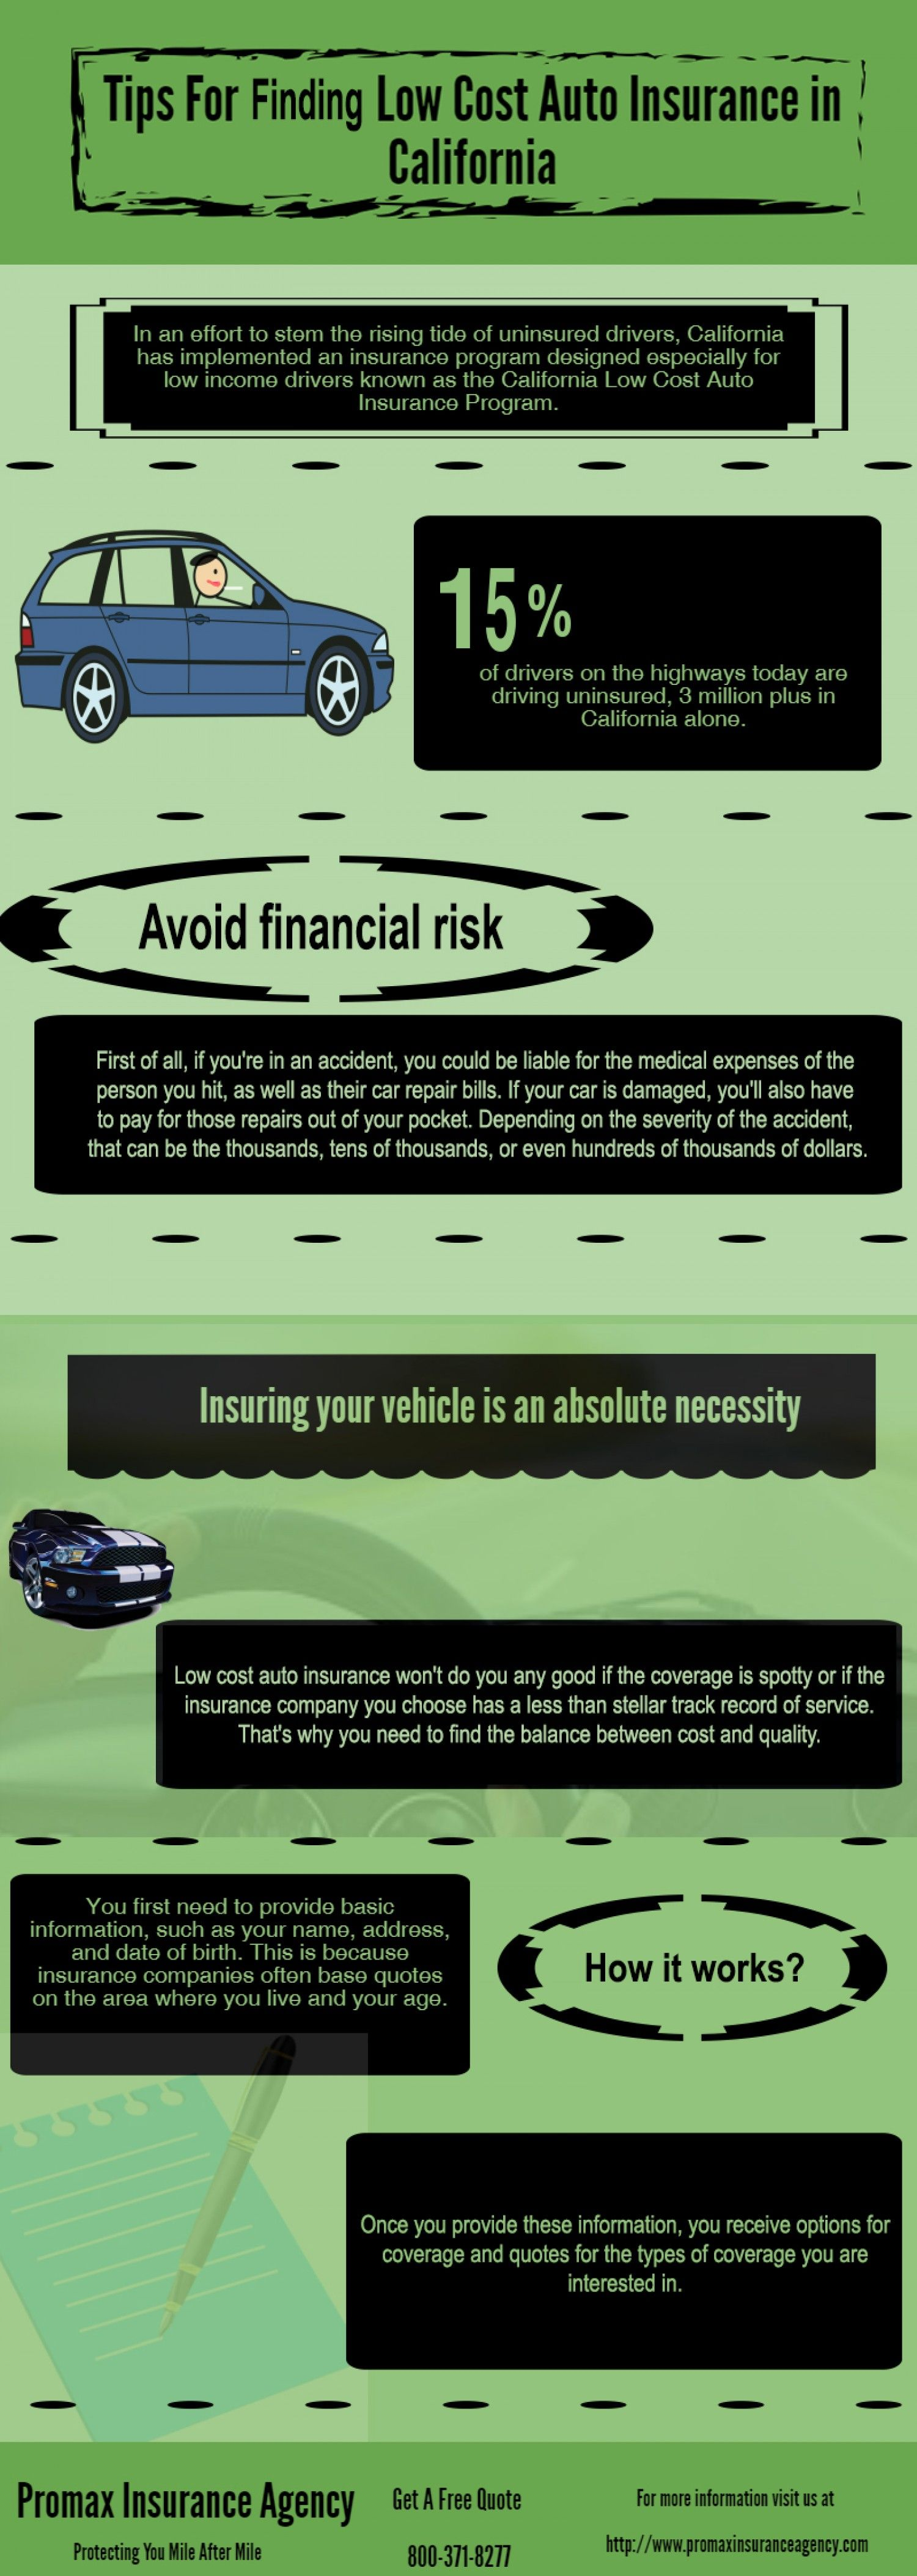 Low Cost Auto Insurance in California Infographic